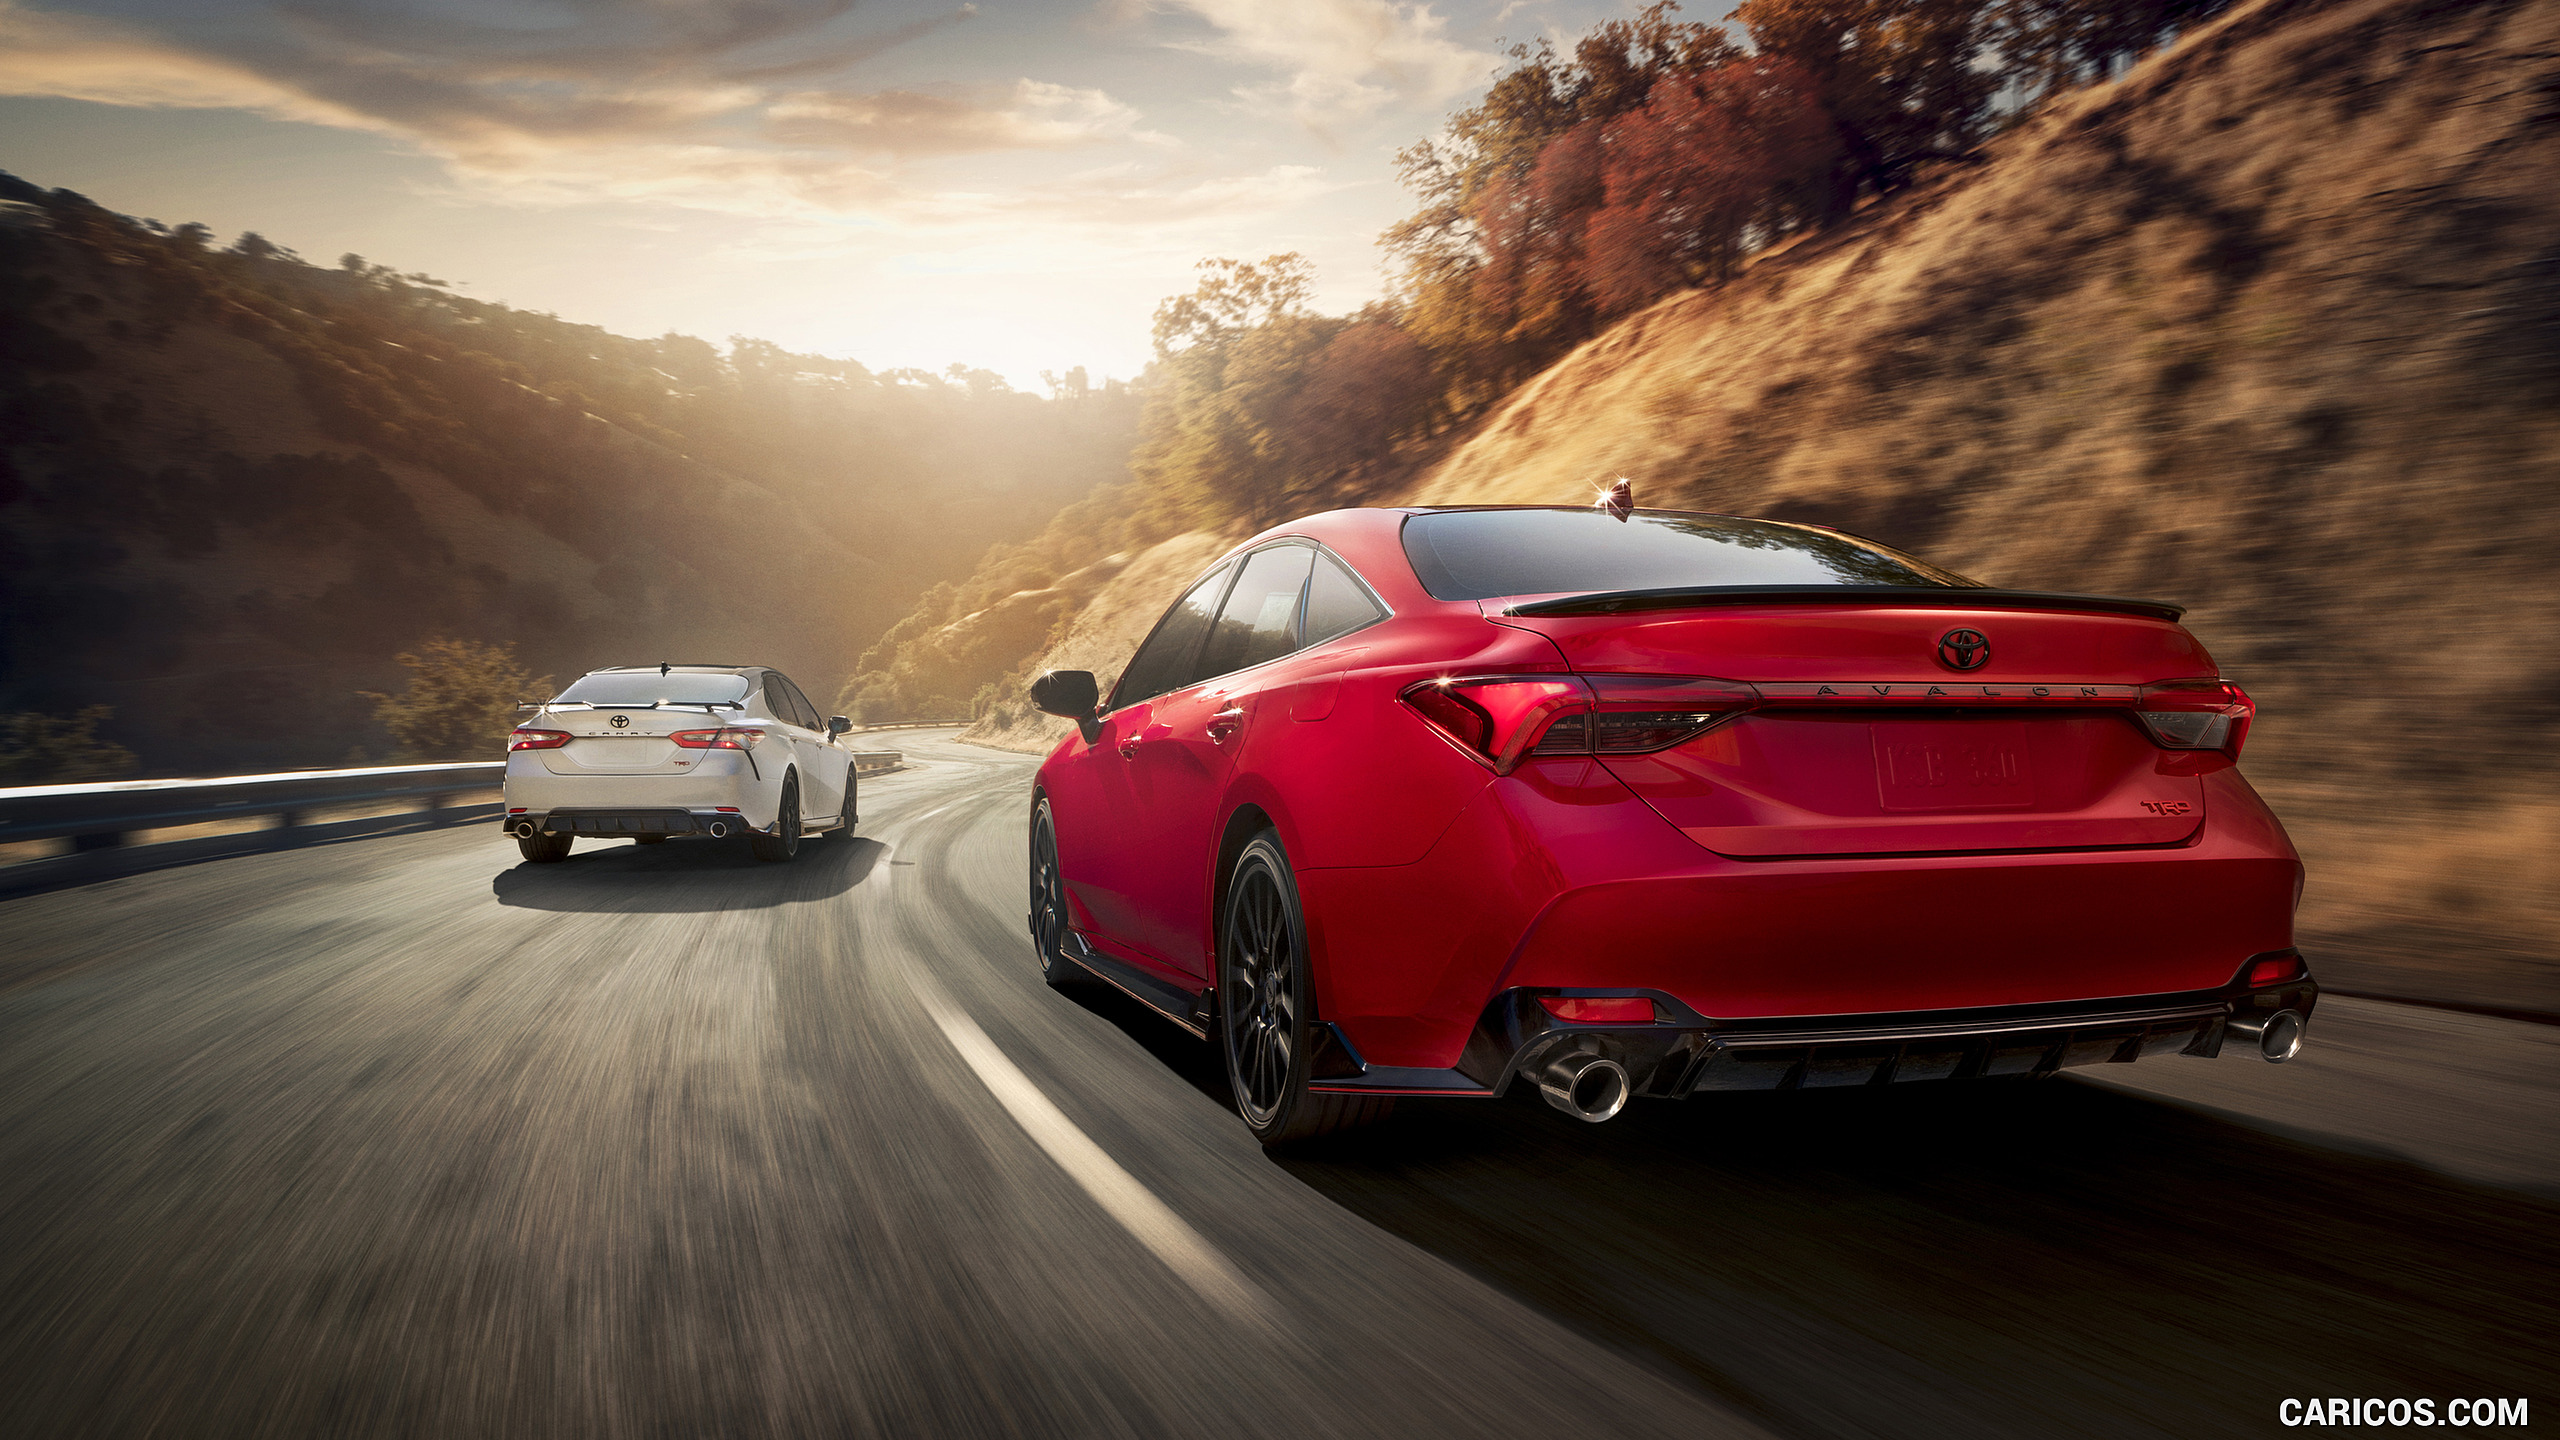 2020 Toyota Avalon TRD and Camry TRD HD Wallpaper 3 2560x1440